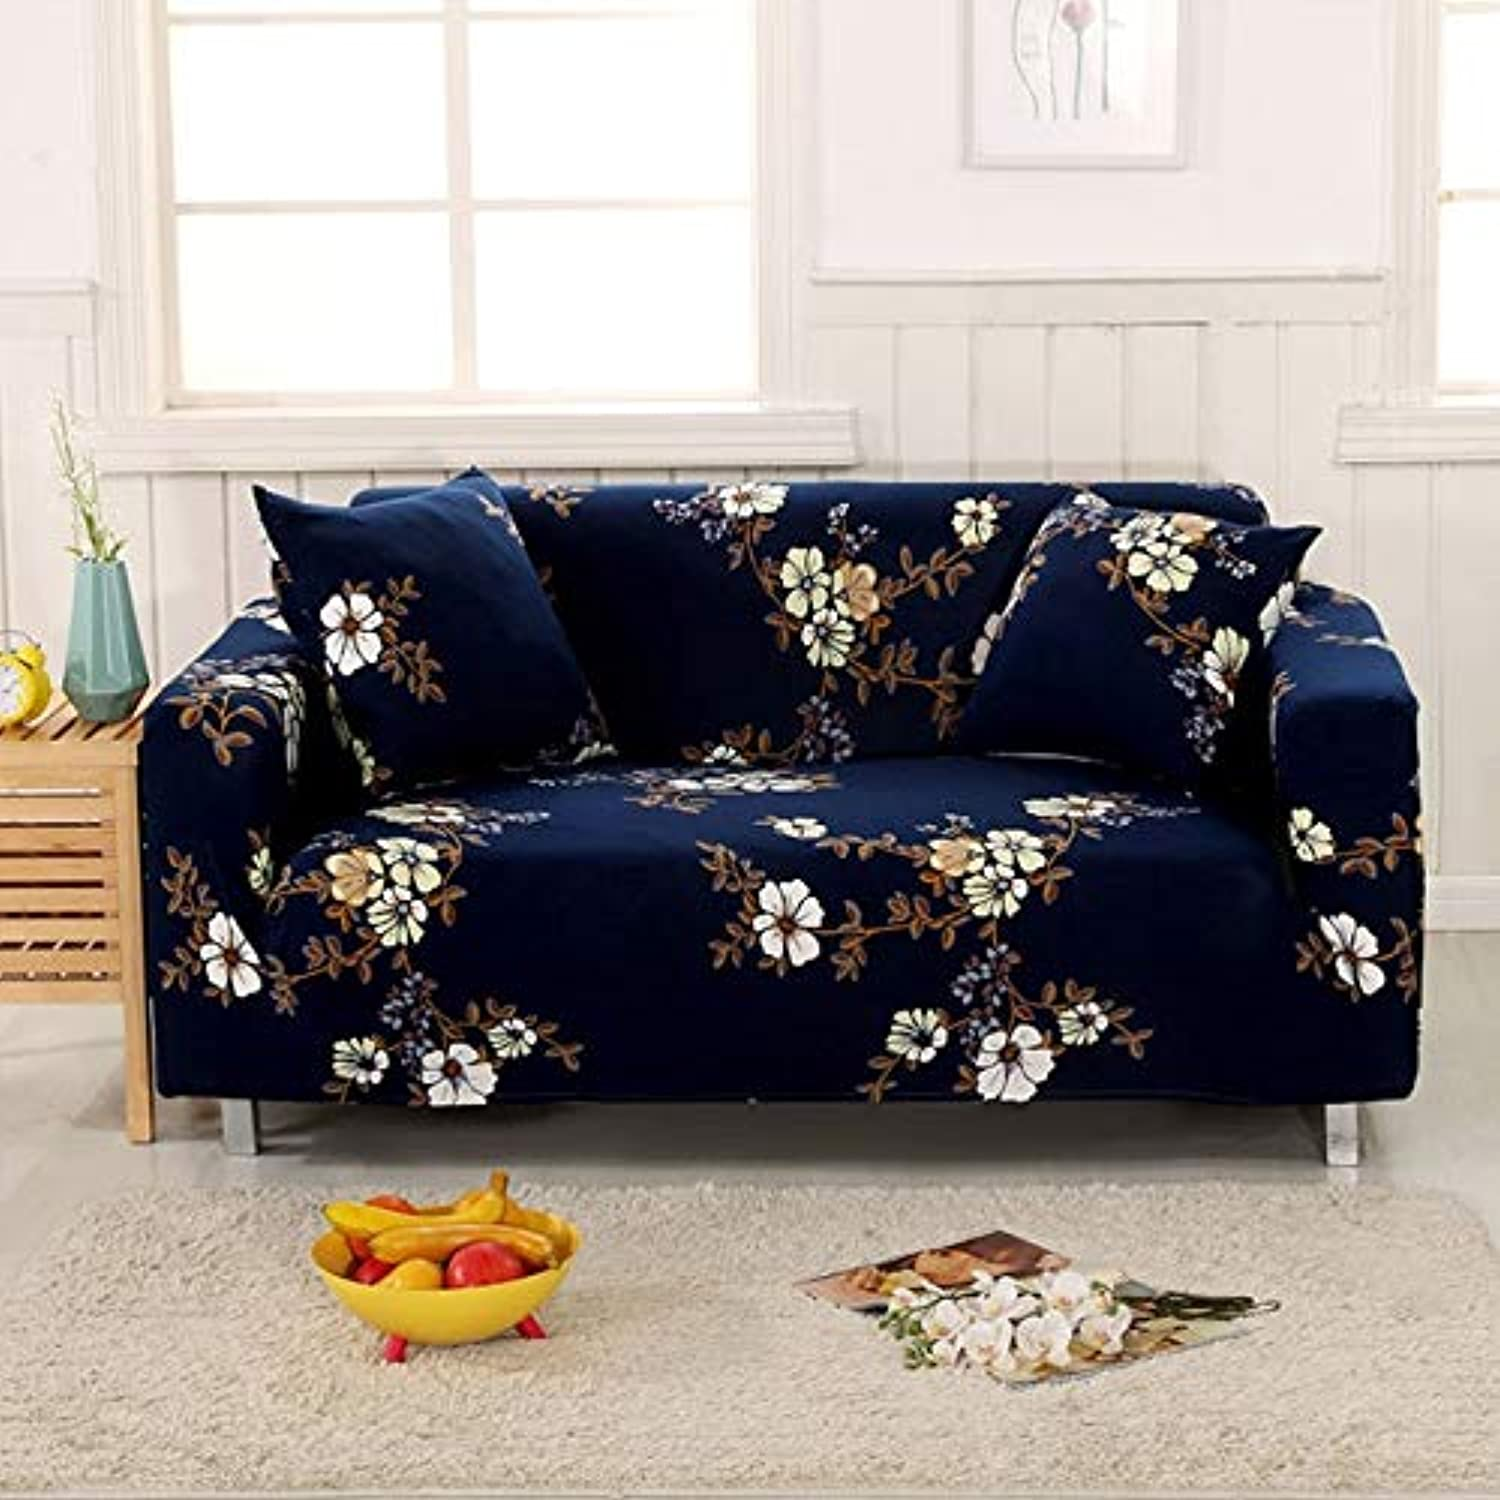 Farmerly 1pcs Flower Leaf Pattern Soft Stretch Sofa Cover Home Decor Spandex Furniture Covers Decoration Covering Hotel Slipcover 58329   A, Two seat